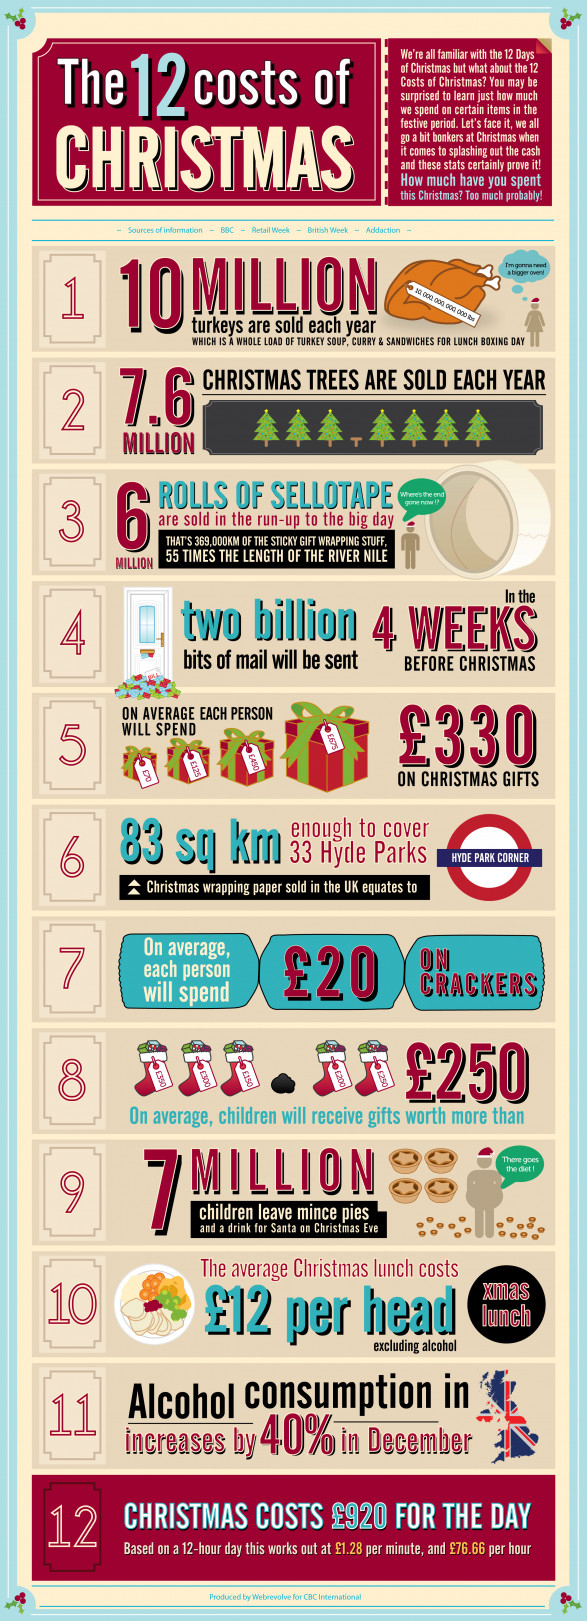 The 12 Costs of Christmas!